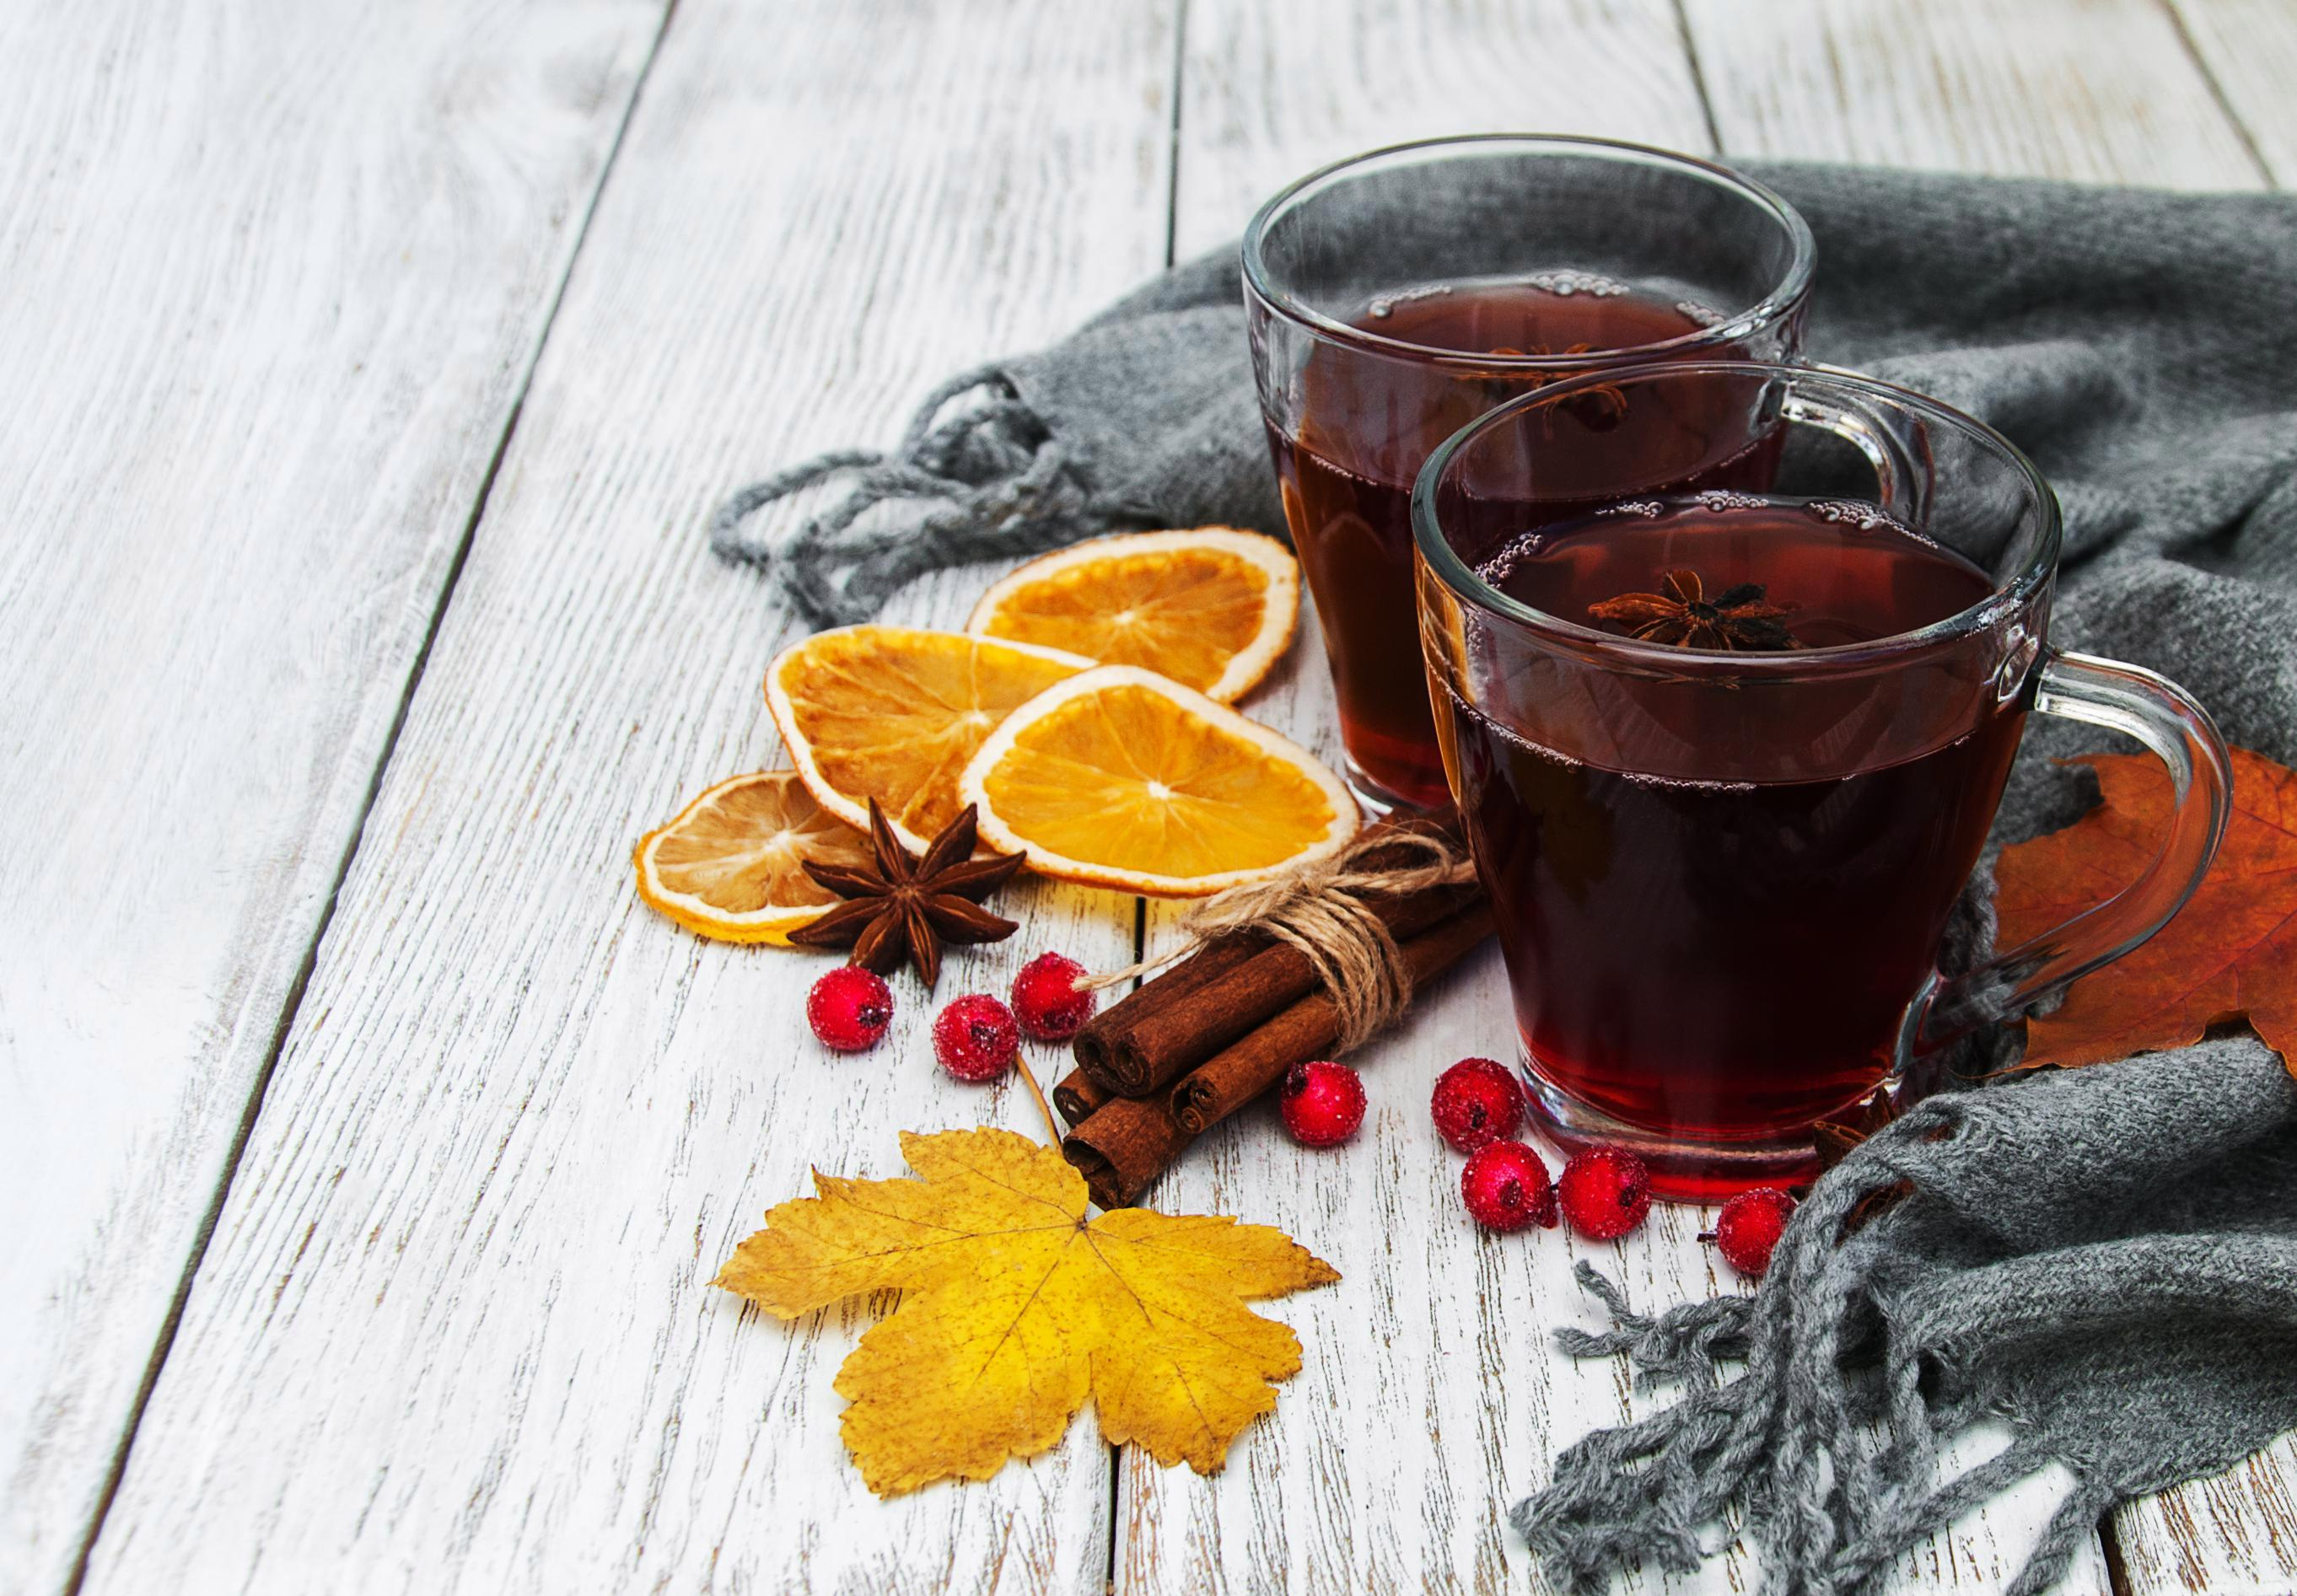 How to make mulled wine this Christmas, what is the best wine to use and is there a non-alcoholic version?